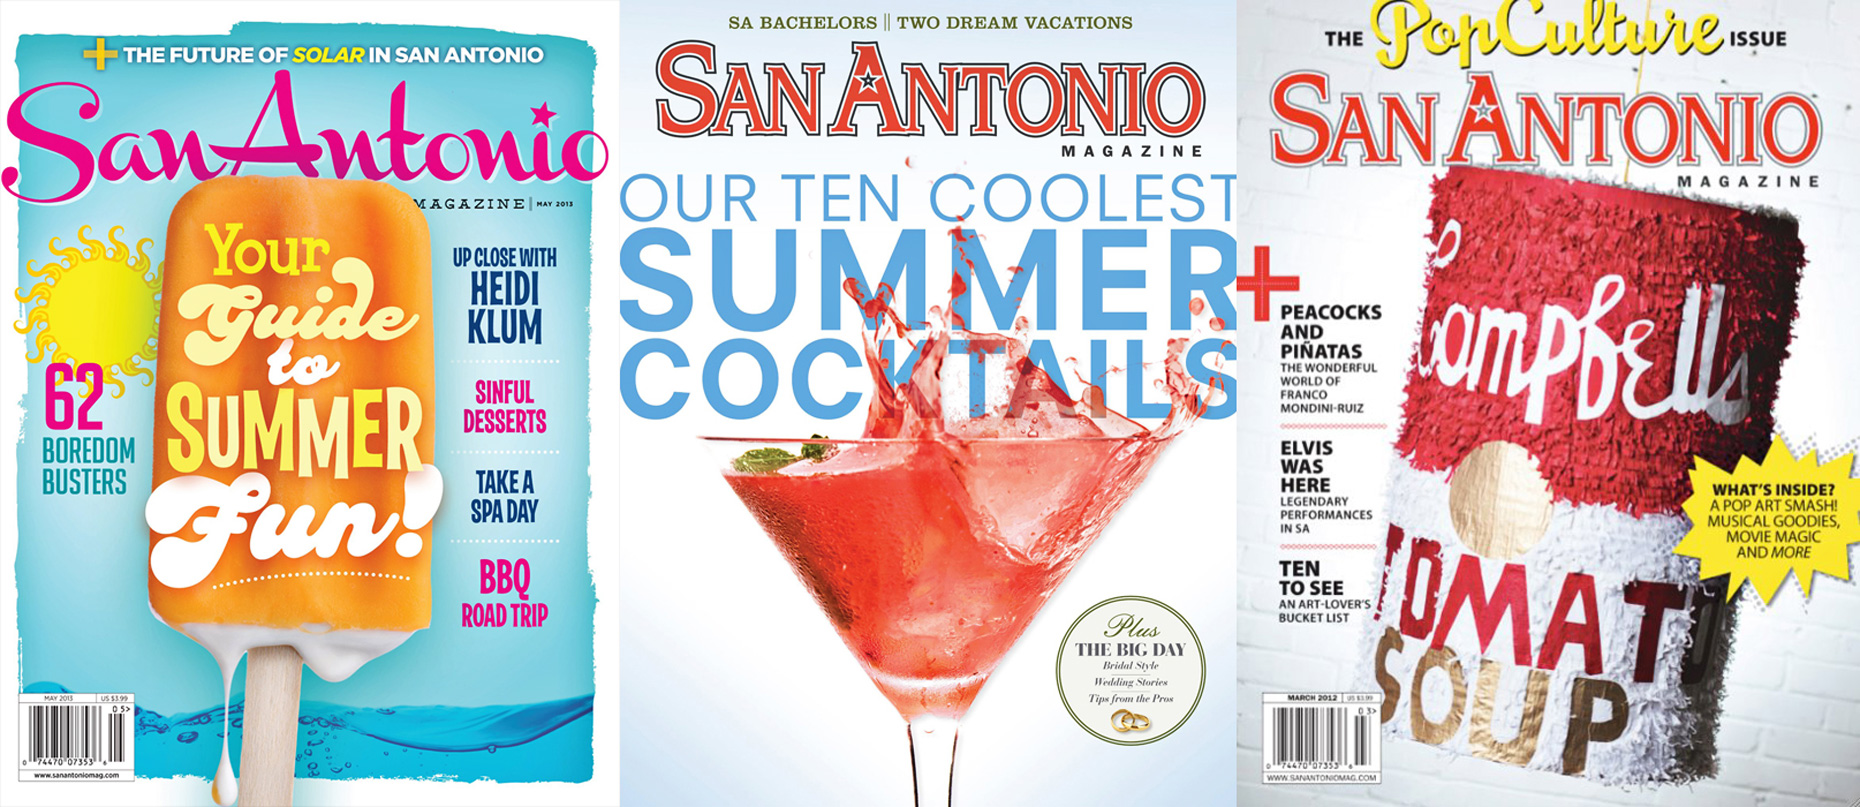 San-Antonio-Magazine-Covers1.jpg